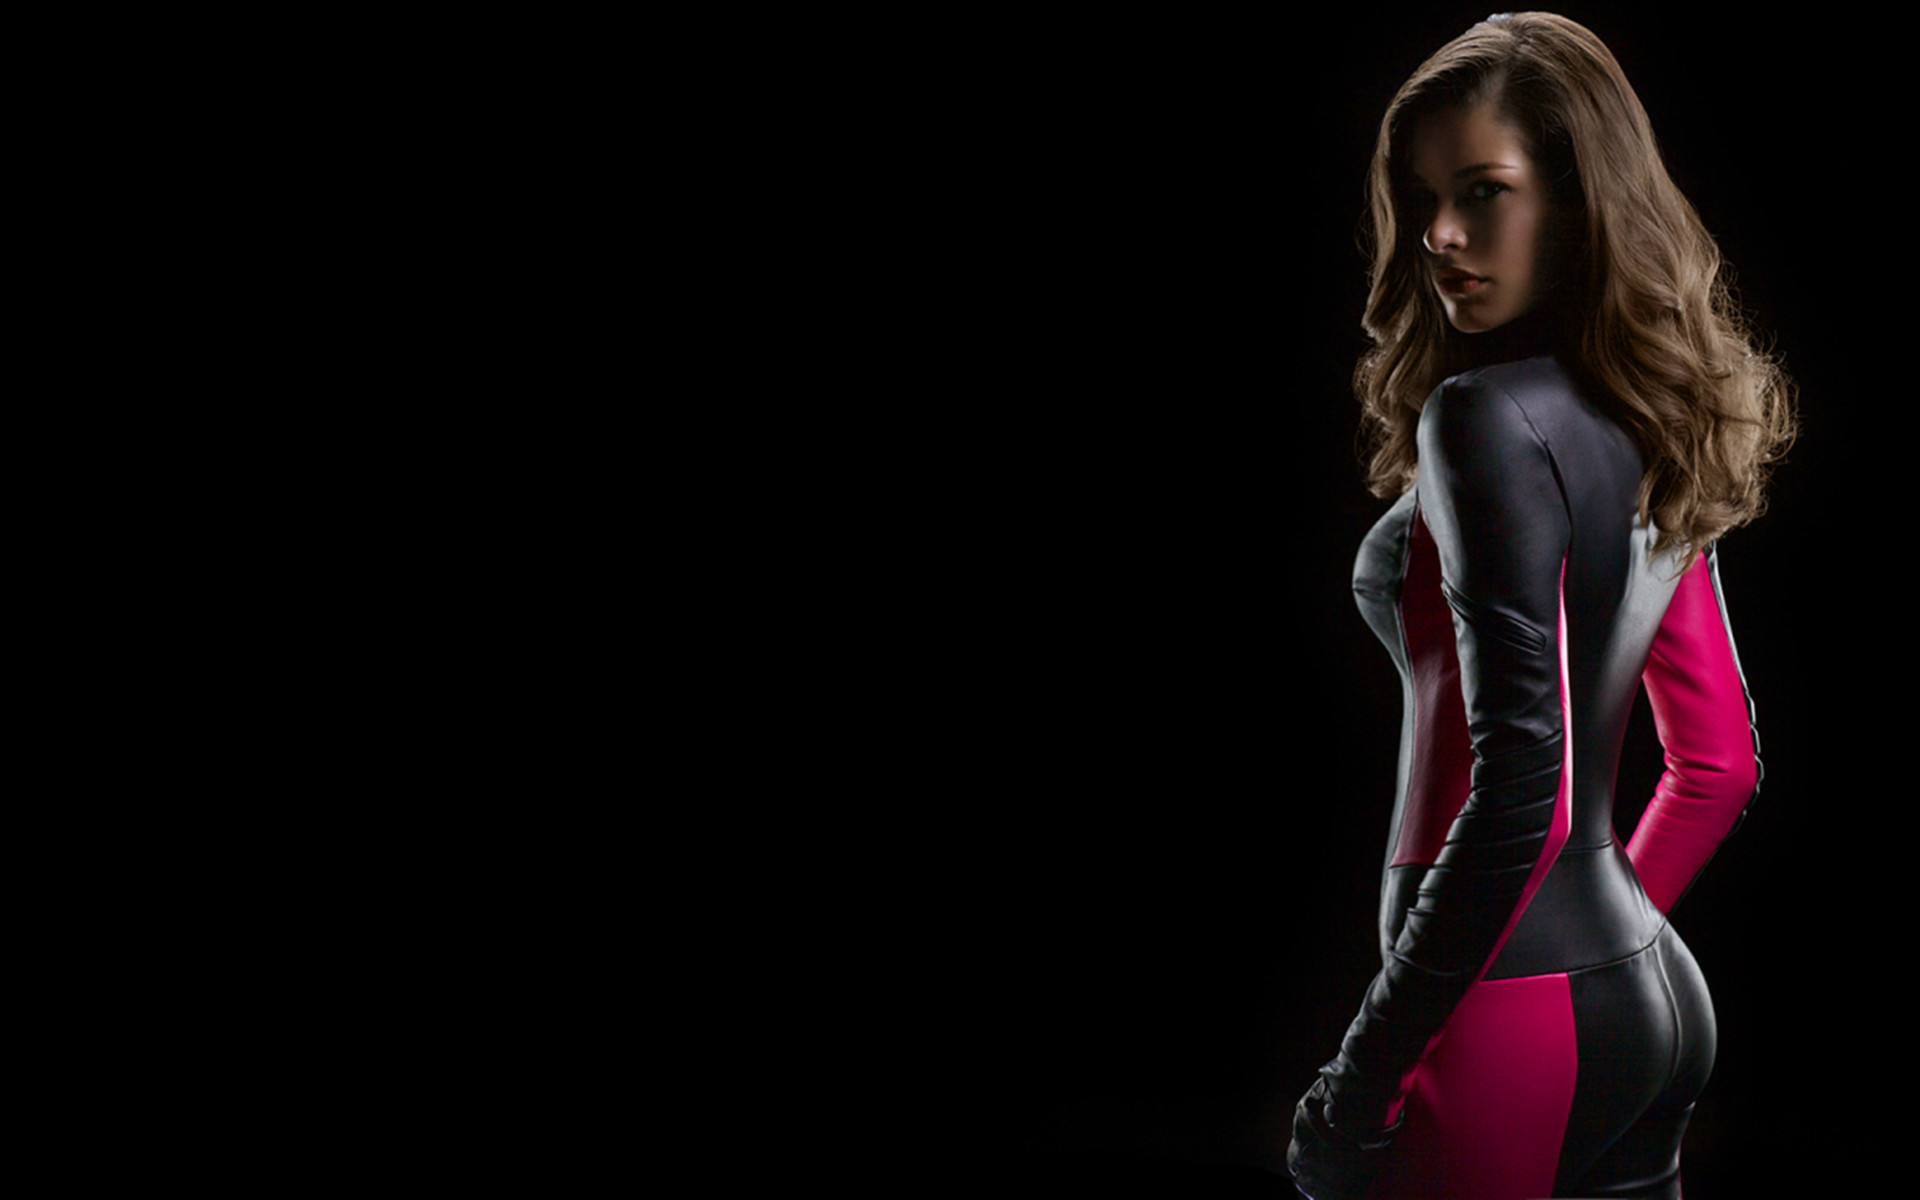 1920x1200 bodysuit, T Mobile, Women, Mission Impossible Wallpapers HD .